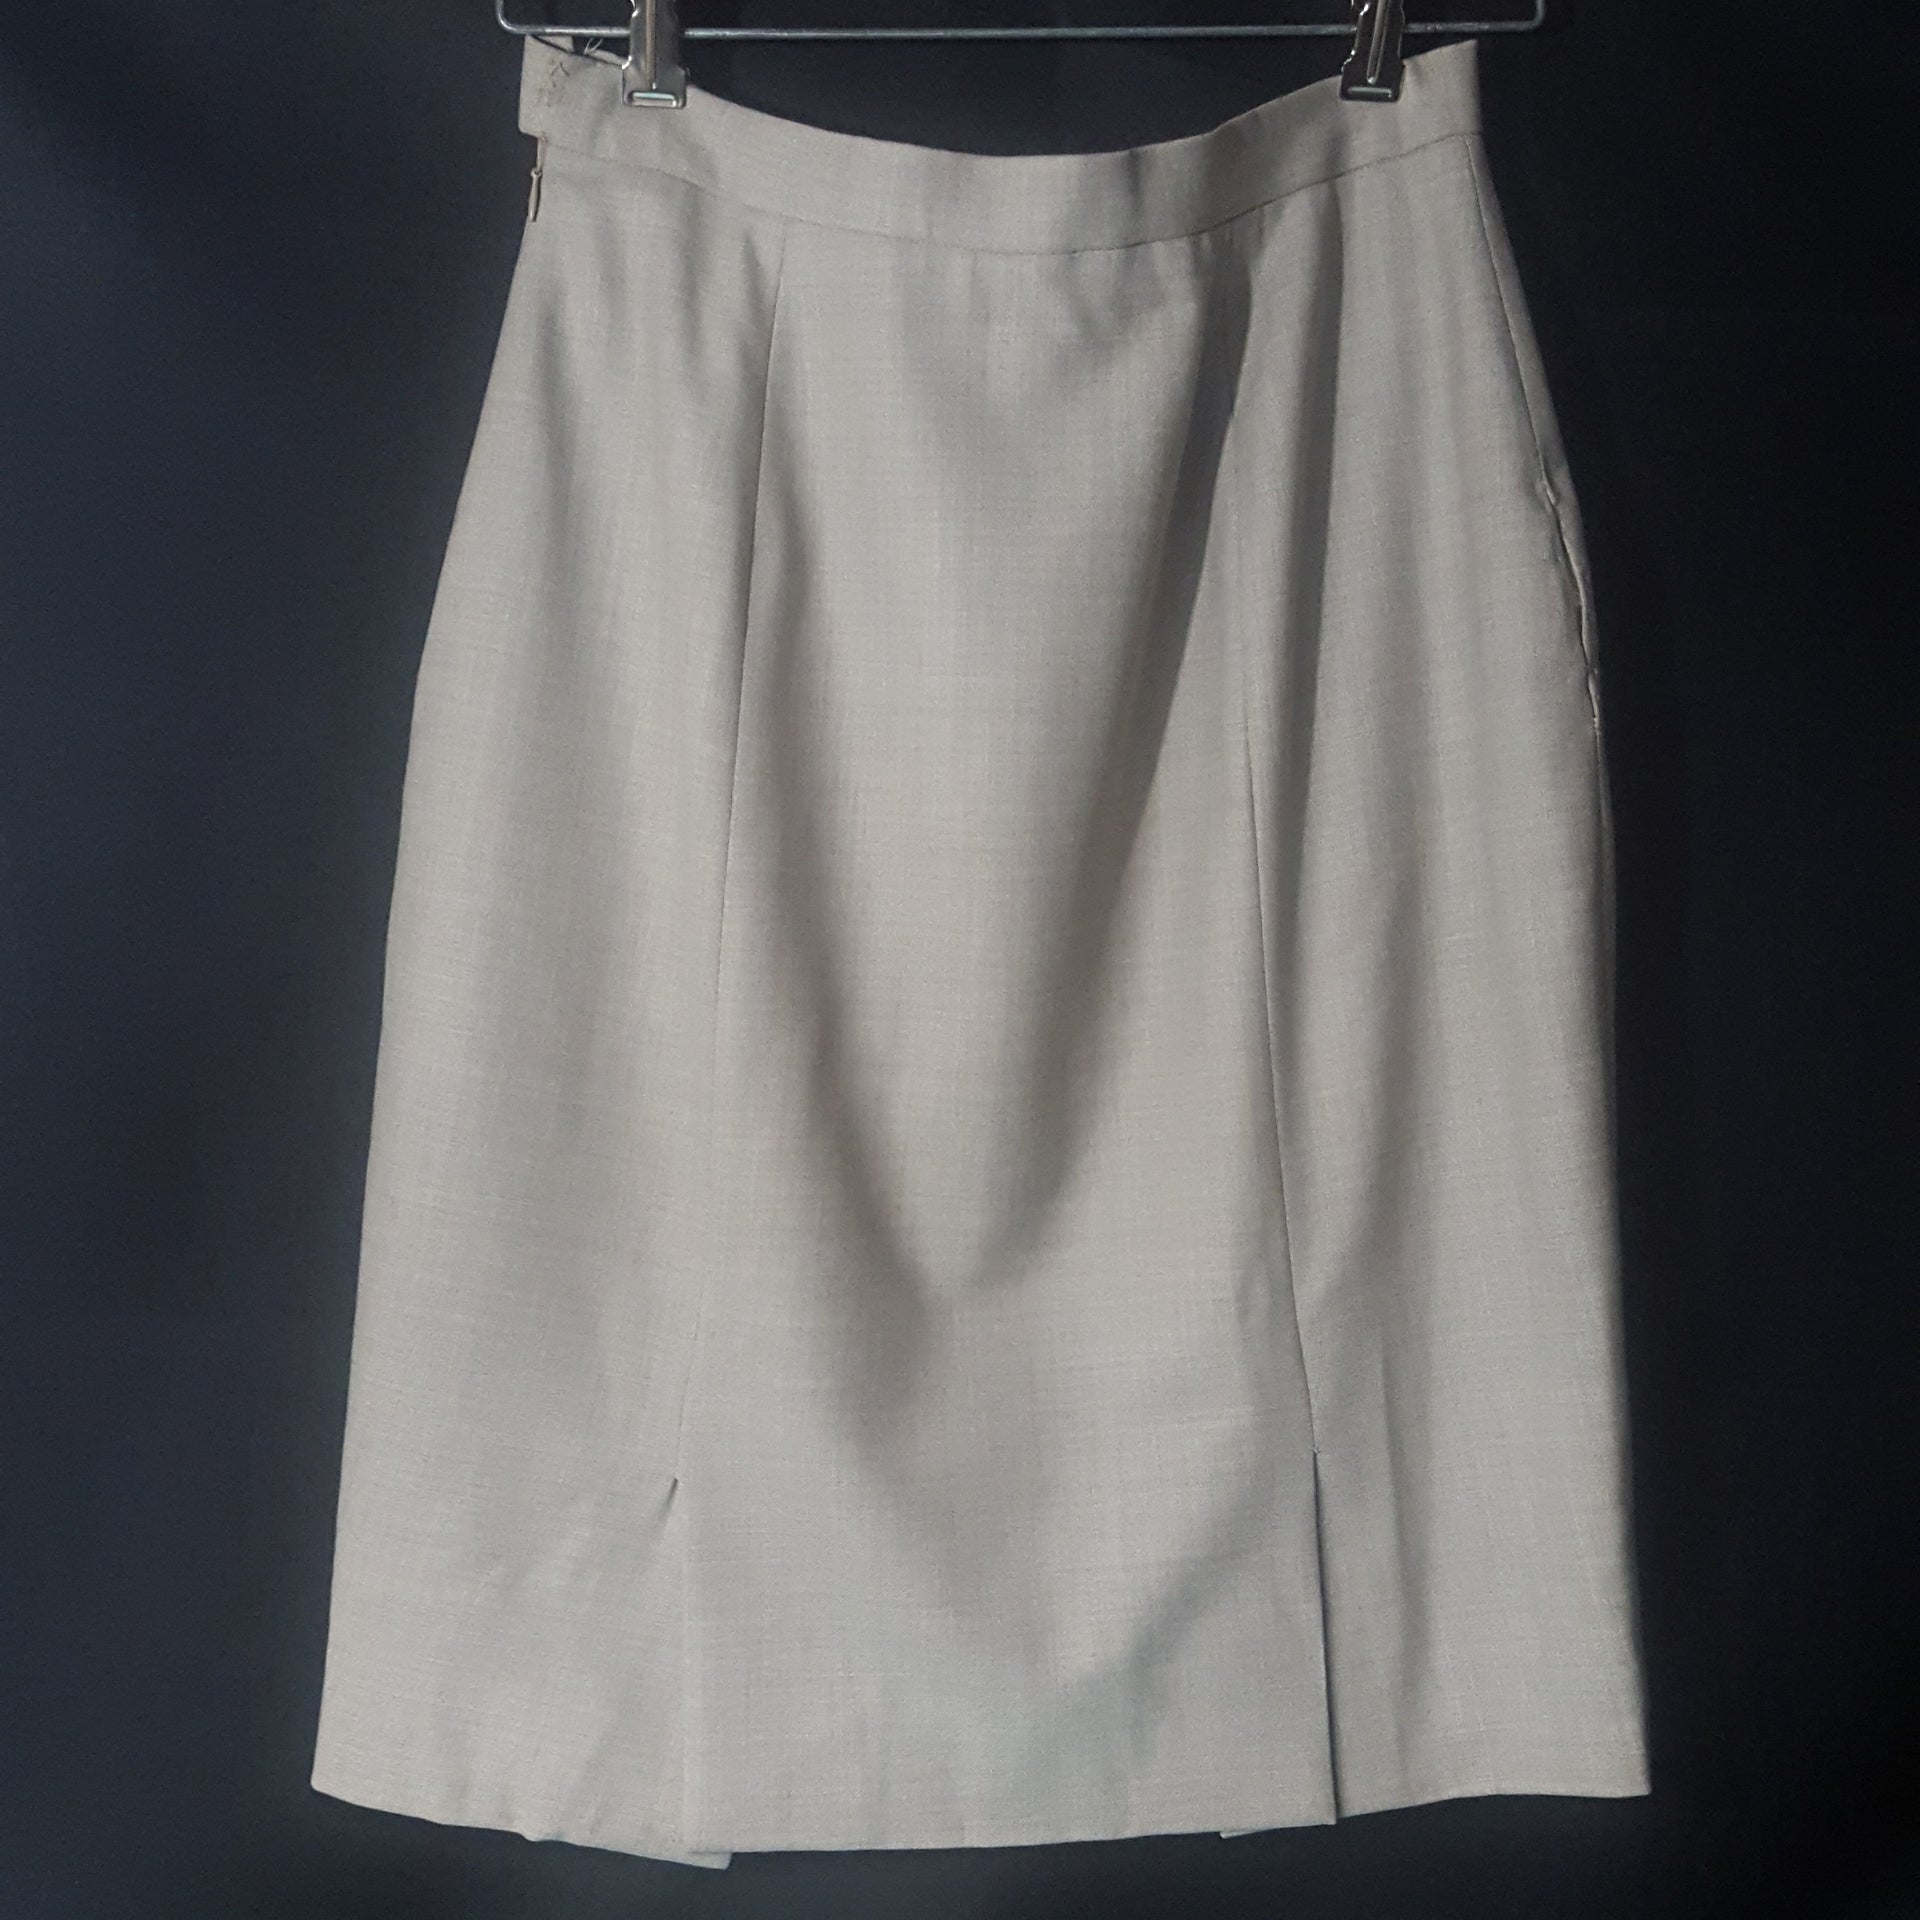 Givenchy Pencil Skirt 1990s Size 40/ S